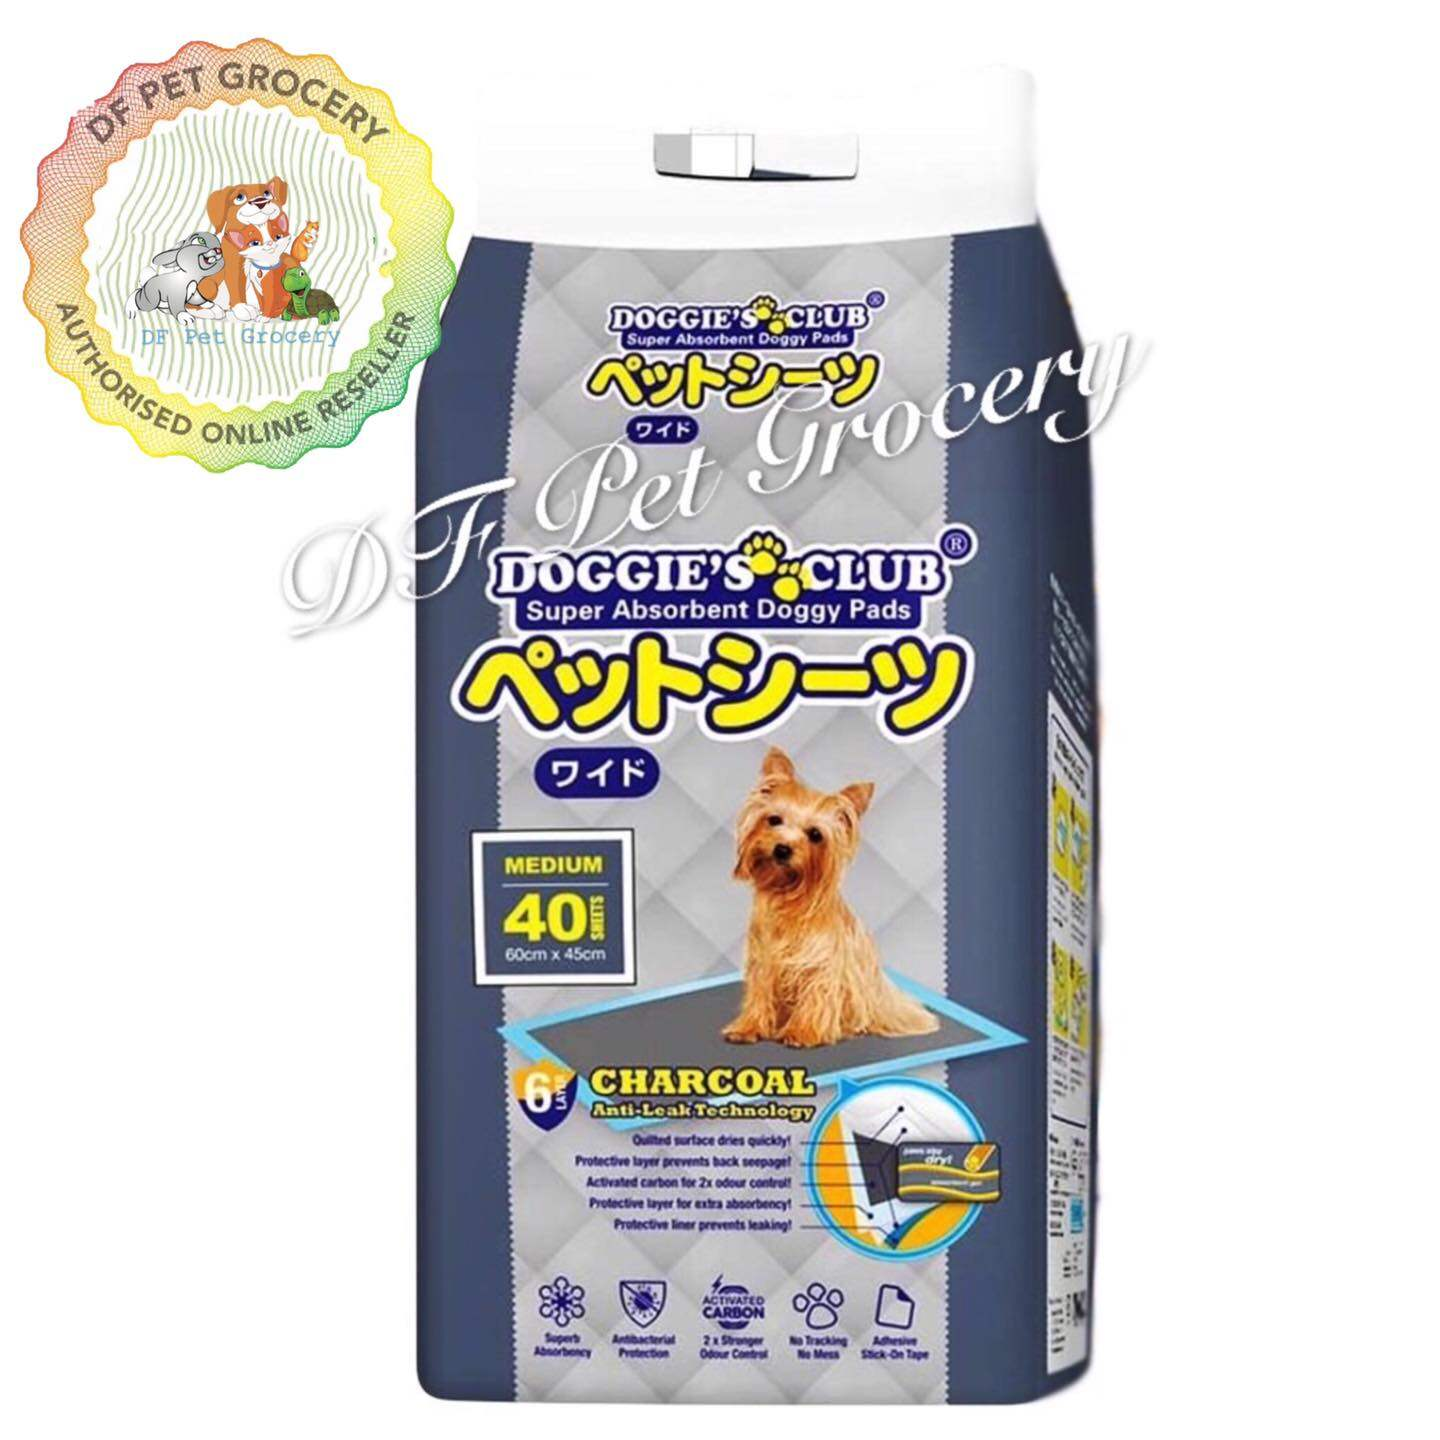 Doggies Club Charcoal Super Absorbent Doggy Pads-M 60cm x 45cm(40Sheets)